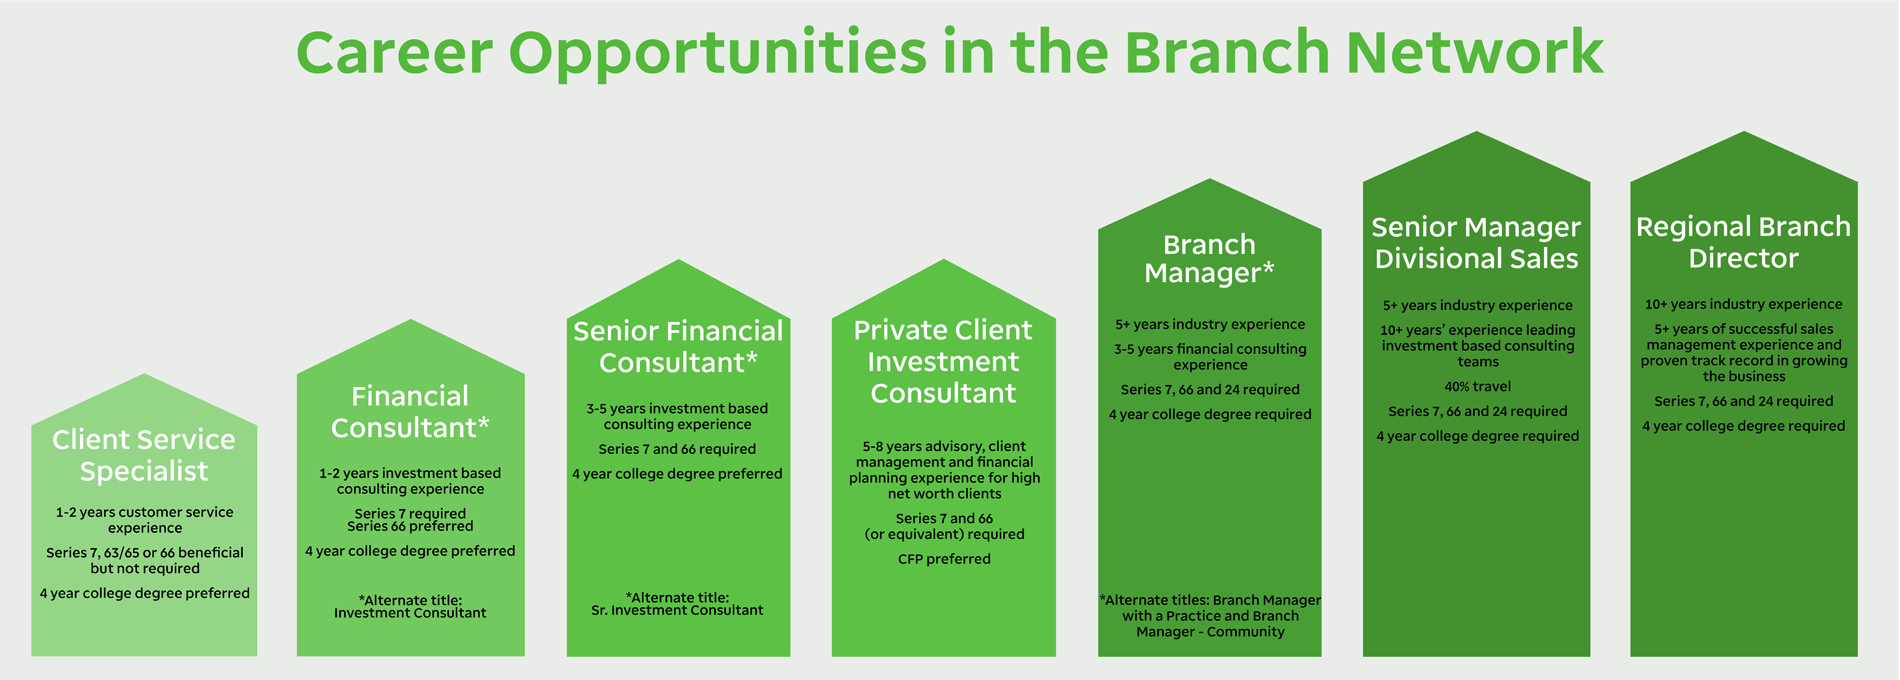 Career Opportunities in the branch network. Client Service Specialist. Financial consultant. Senior financial consultant. Private client investment consultant. Branch manager. Senior manager divisional sales. Regional branch director.